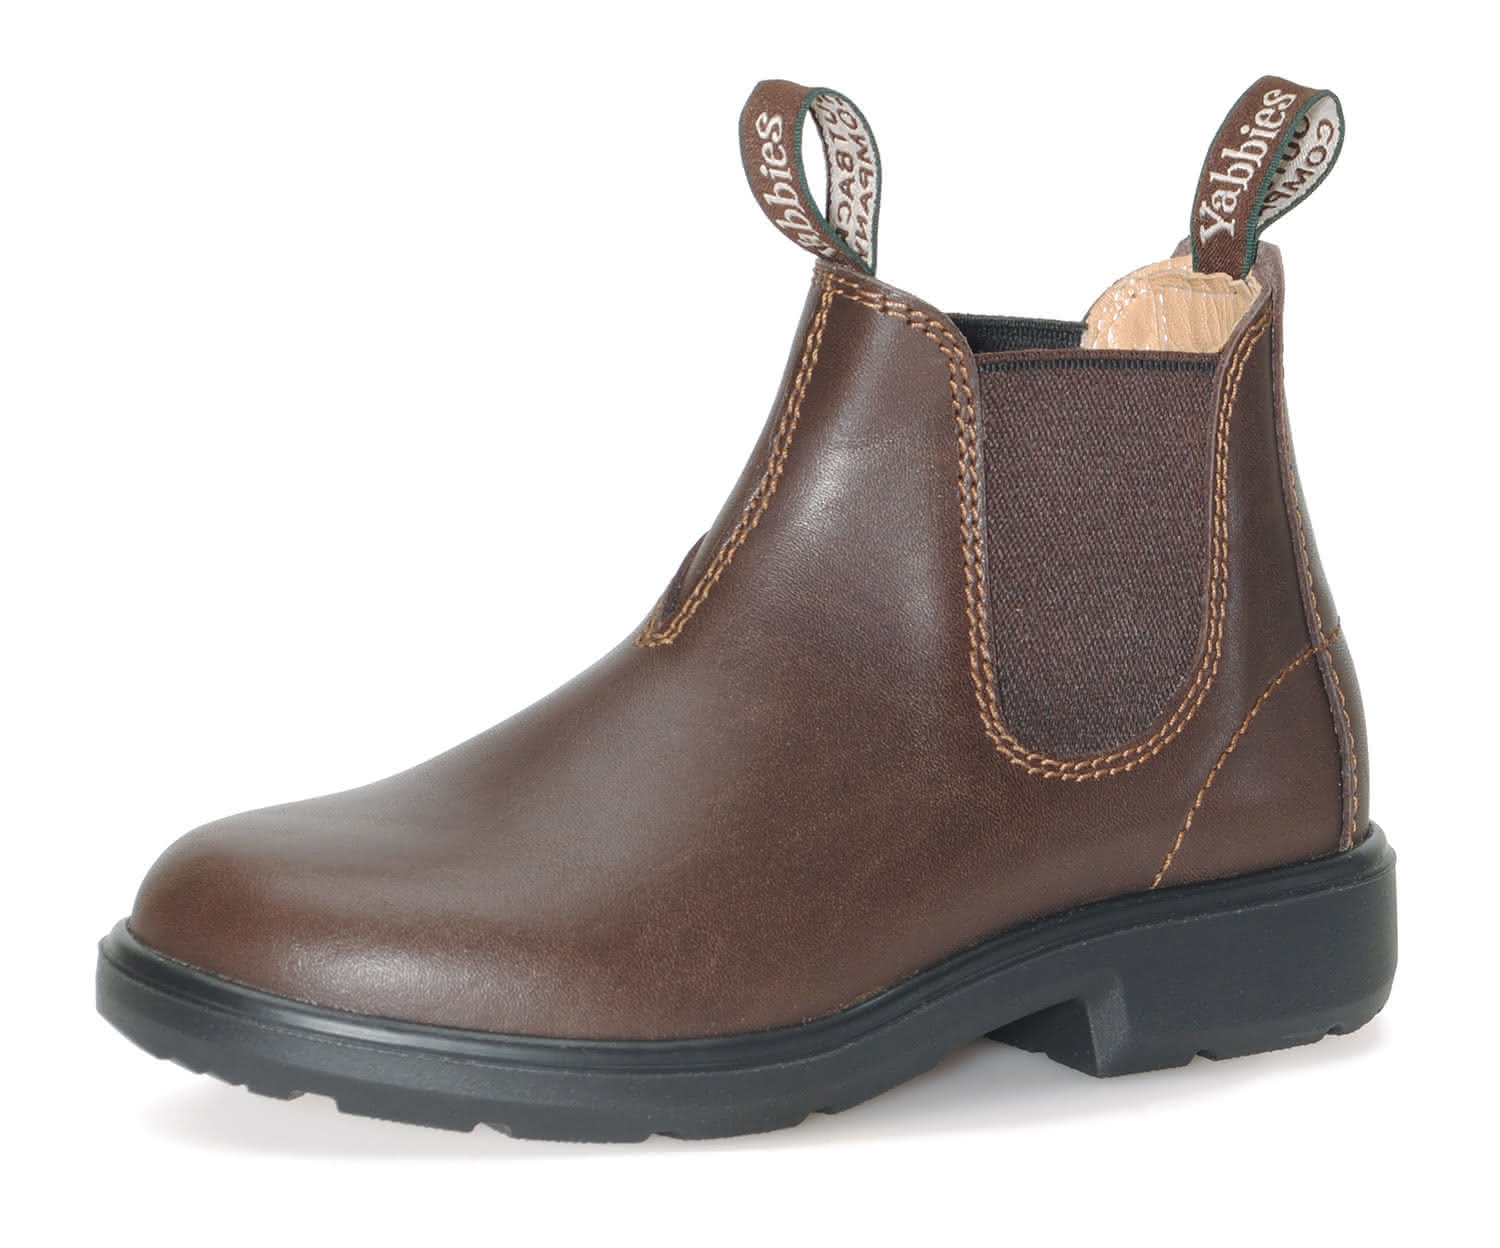 Yabbies Kinderstiefel Chesnut